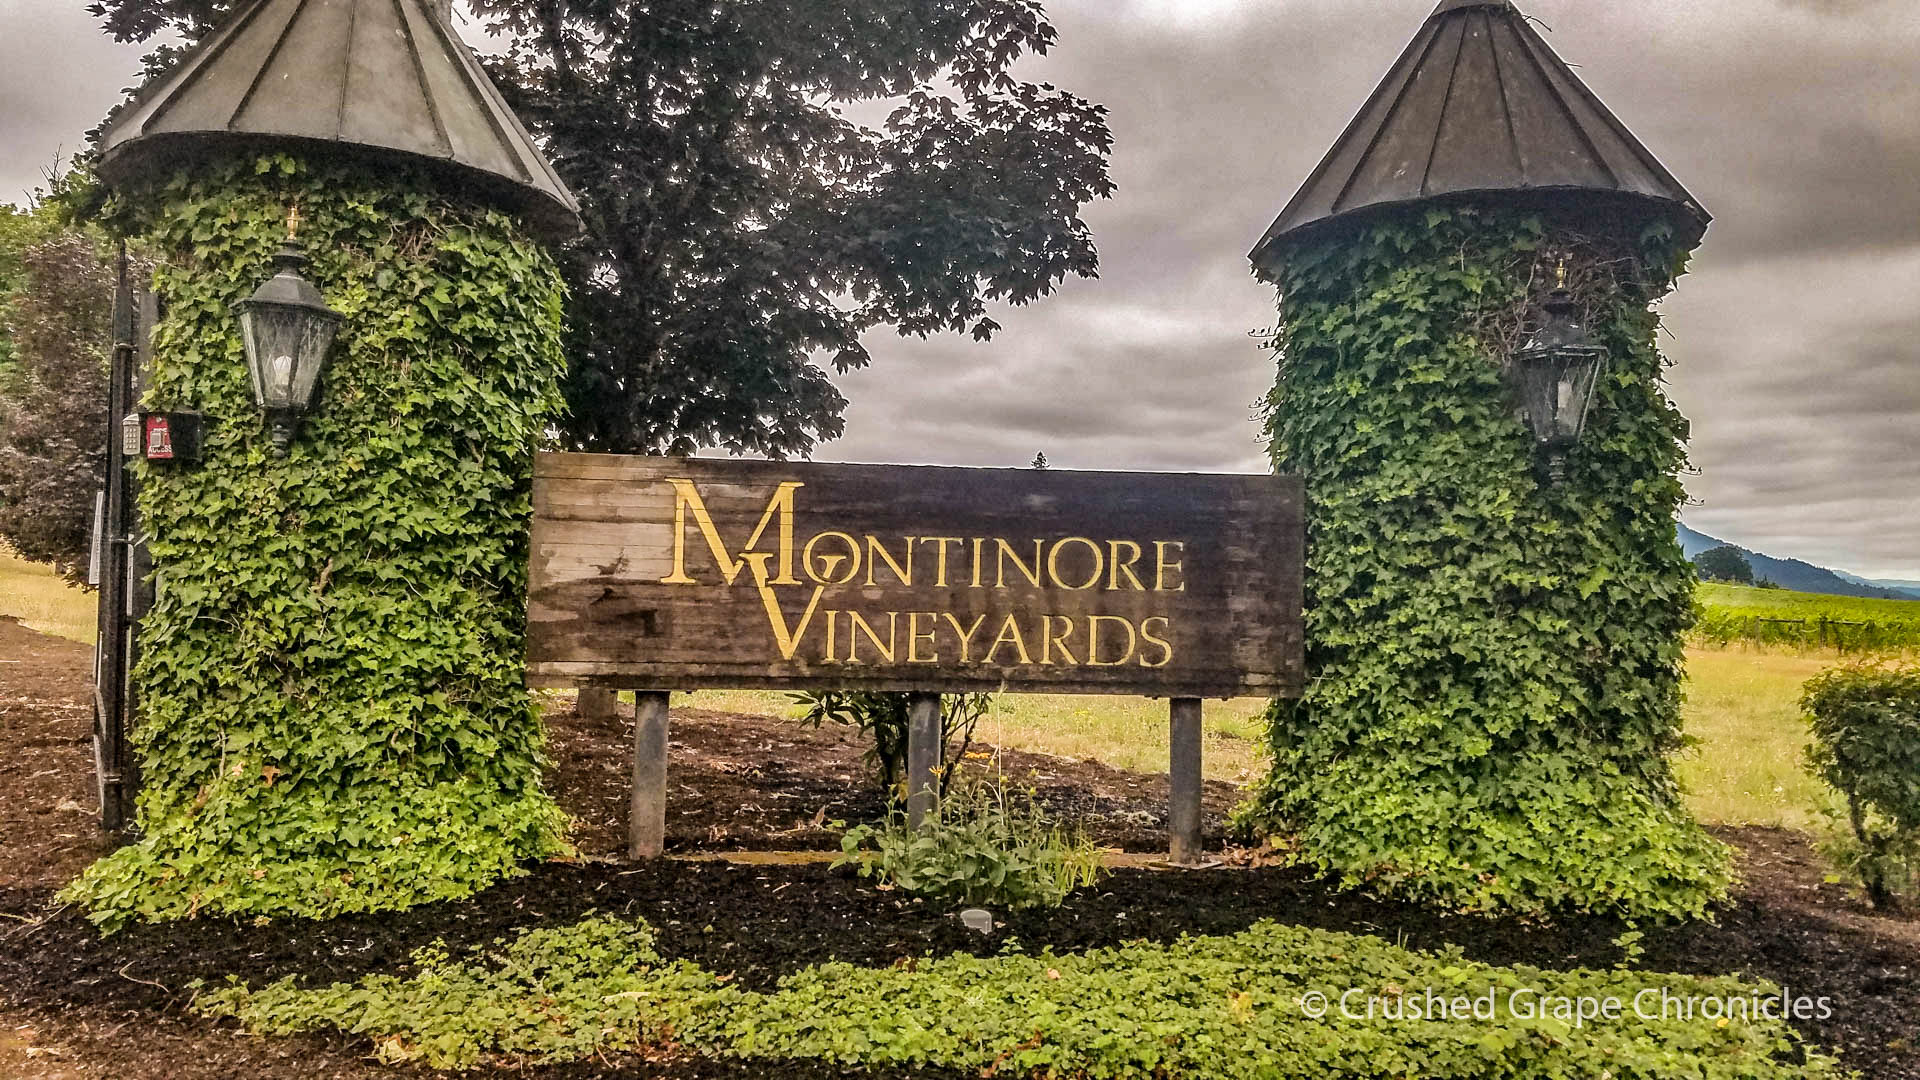 Montinore Estate Vineyards Entrance